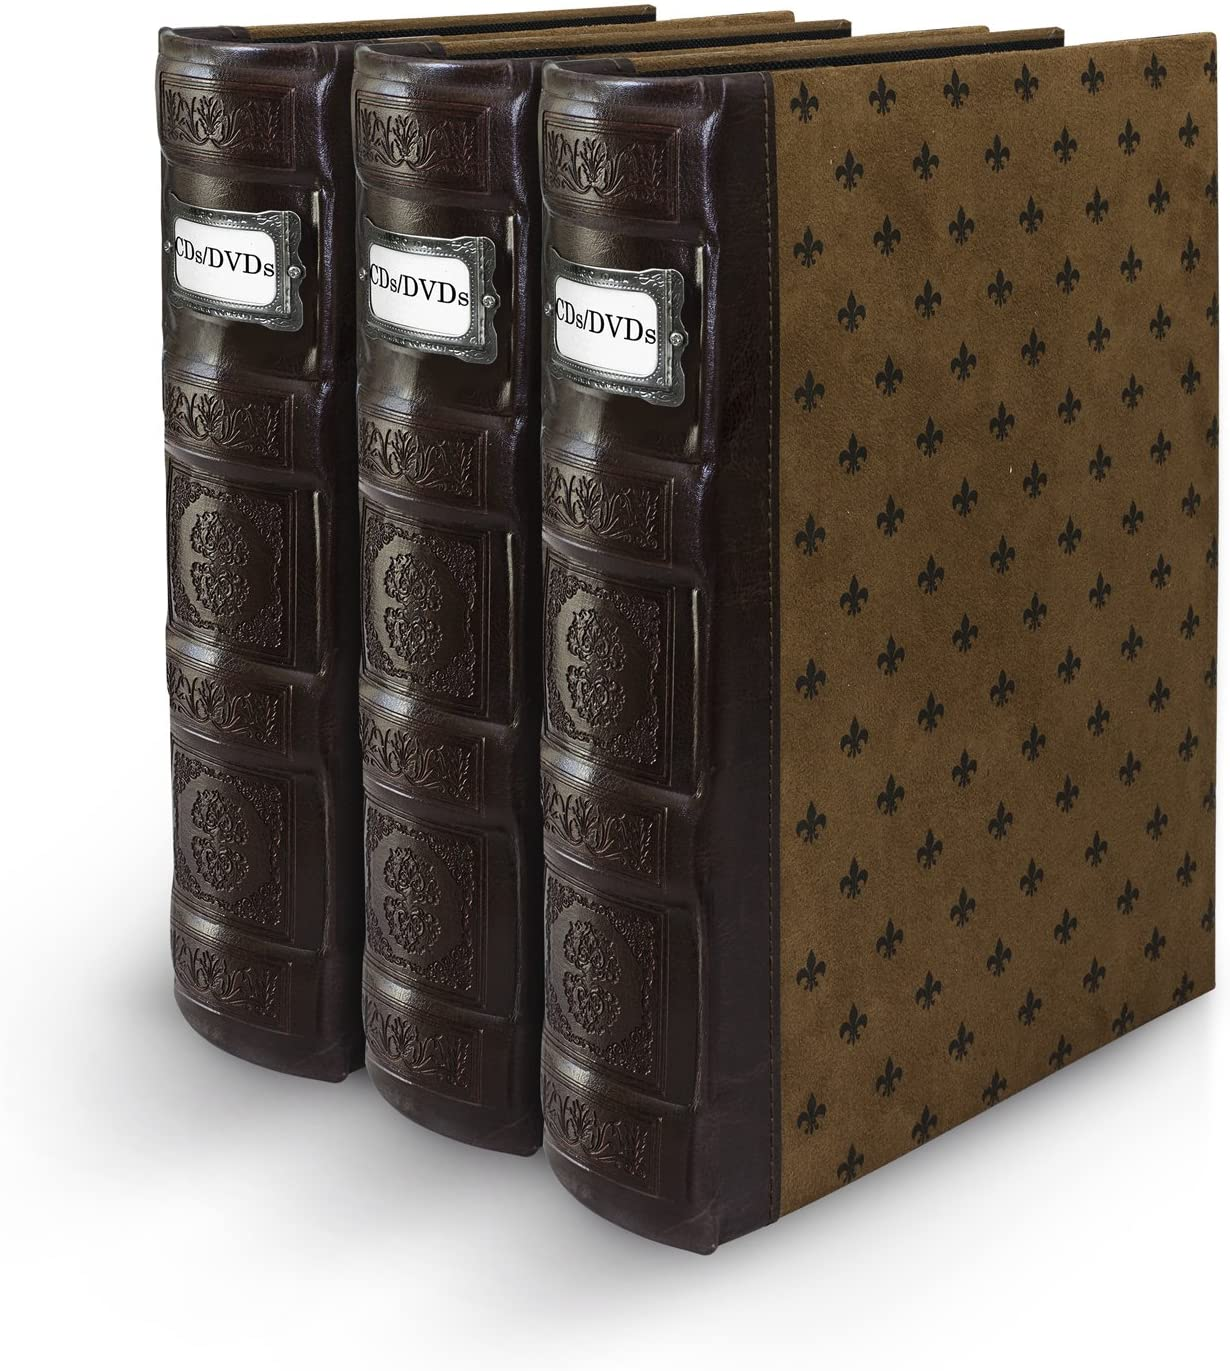 Bellagio-Italia Tuscany Chestnut DVD Storage Binder Set - Stores Up to 144 DVDs, CDs, or Blu-Rays - Stores DVD Cover Art - Acid-Free Sheets